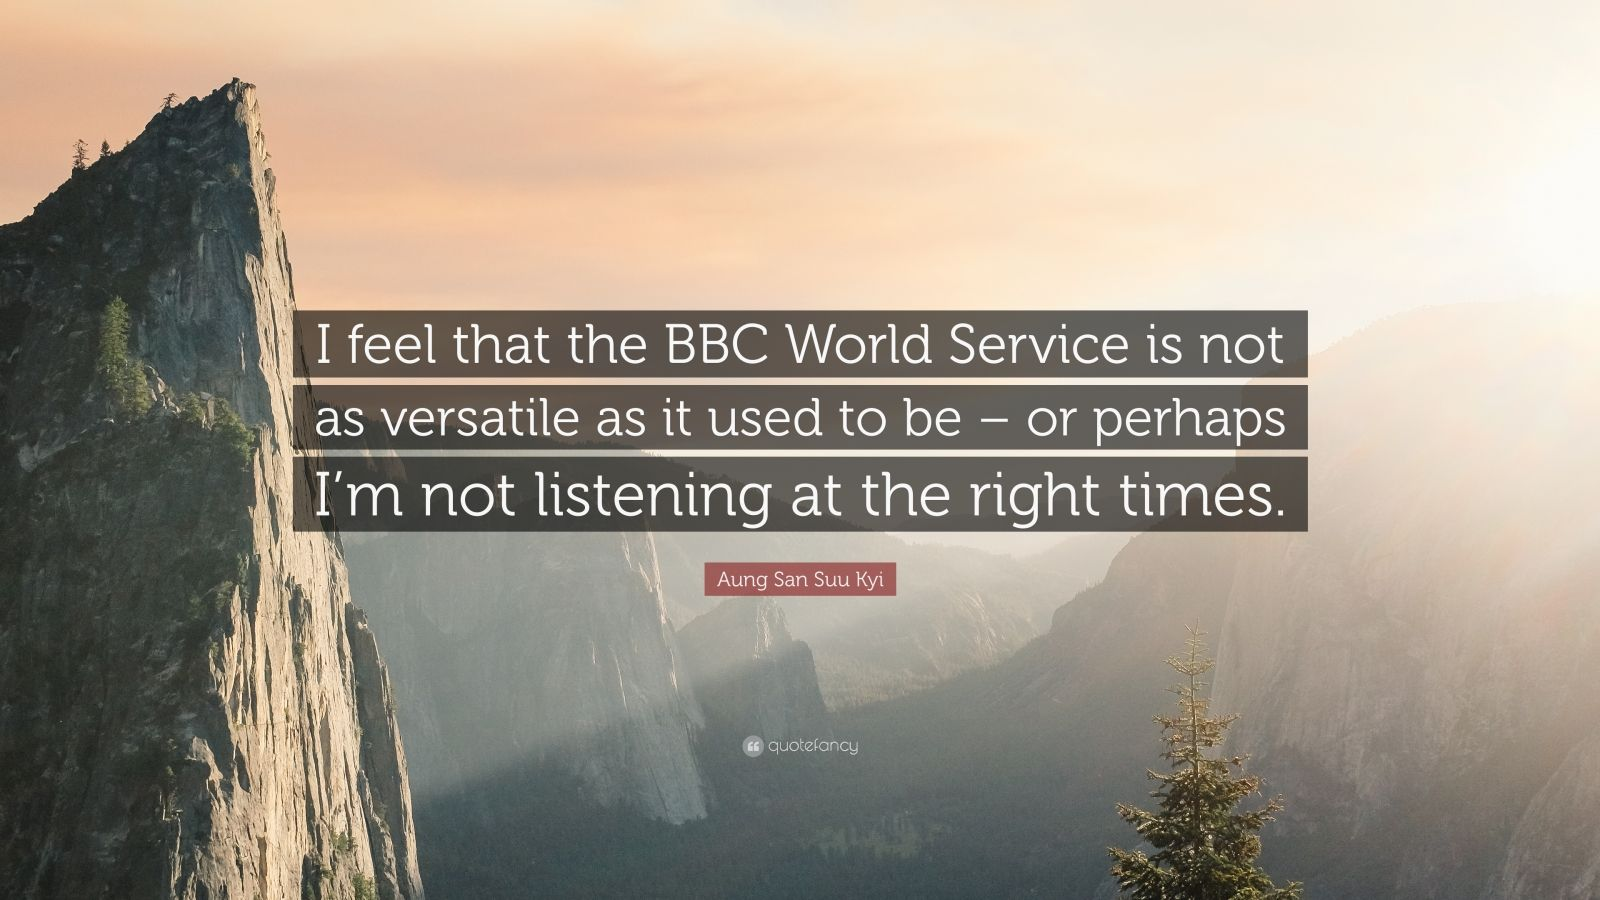 """Aung San Suu Kyi Quote: """"I feel that the BBC World Service is not as versatile as it used to be – or perhaps I'm not listening at the right times."""""""